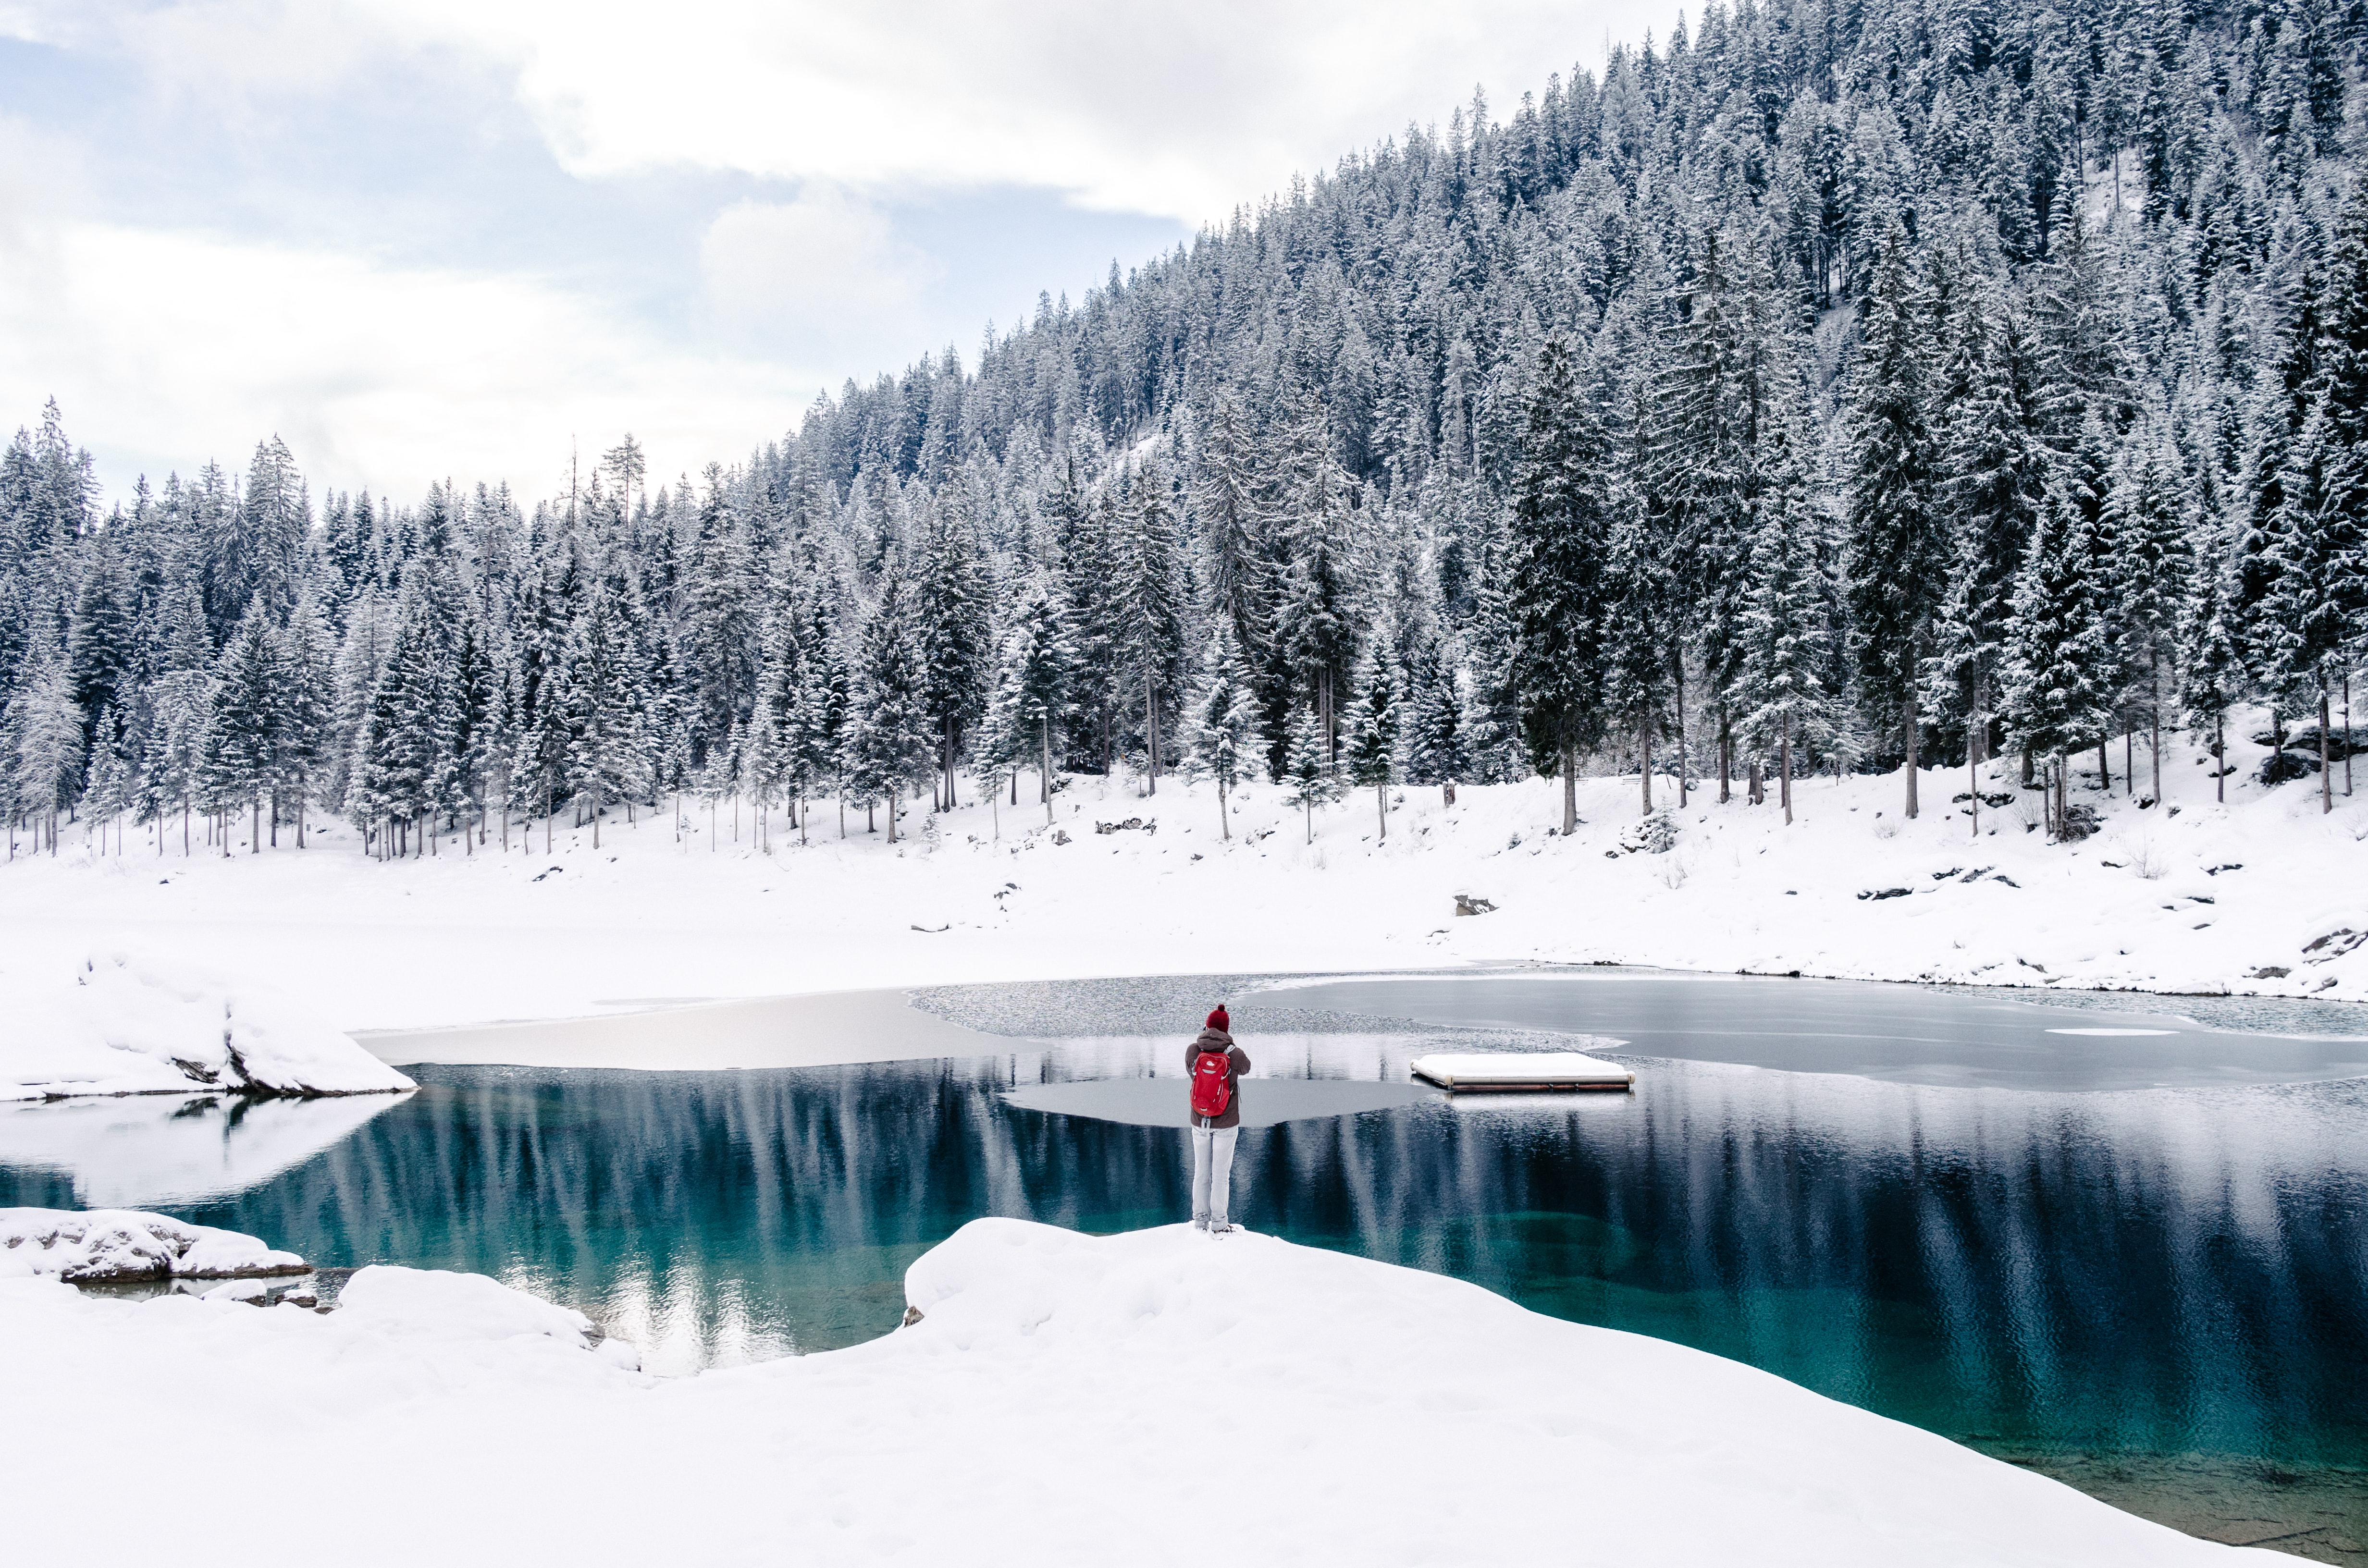 A person standing in front of a mountain pond at the Grisons canton in Switzerland